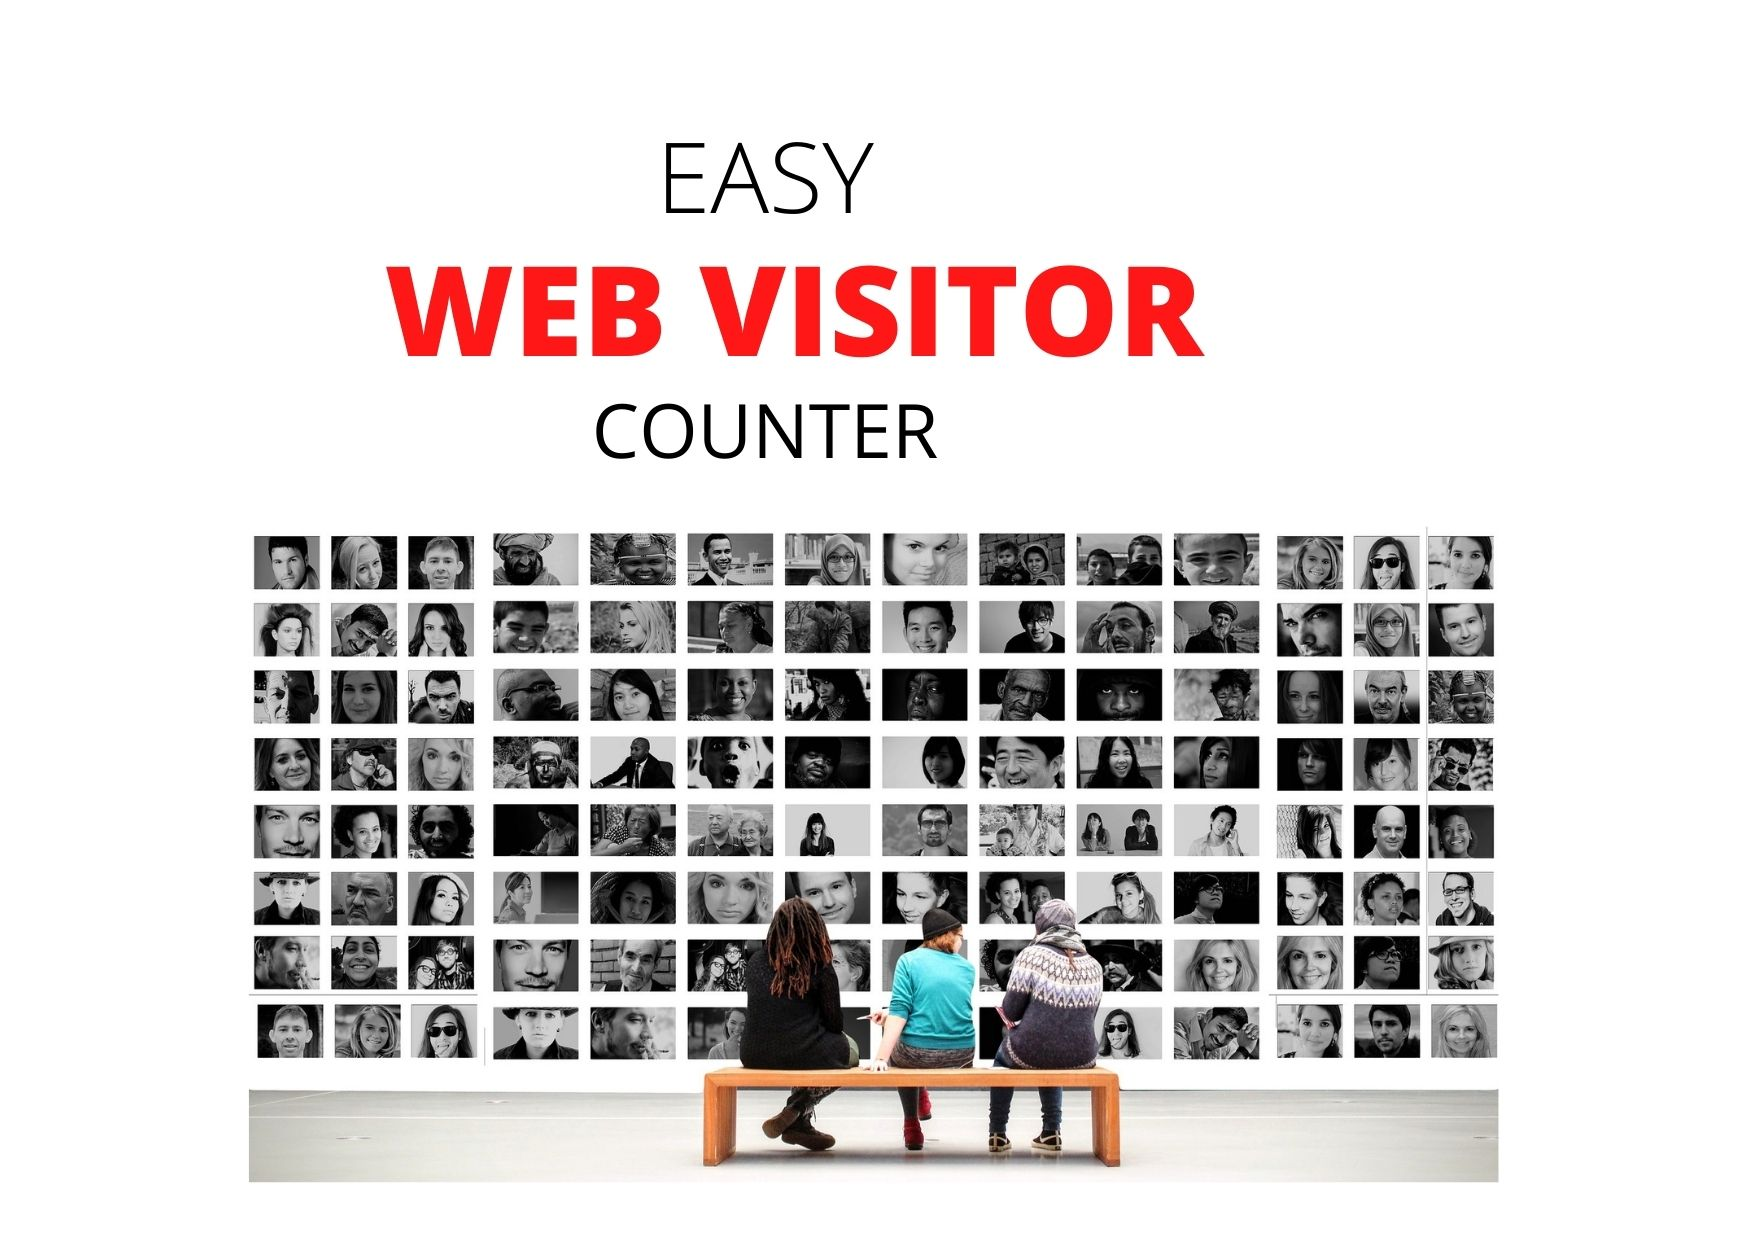 Easy Web Visitor counter - Discover exactly how many people are visiting